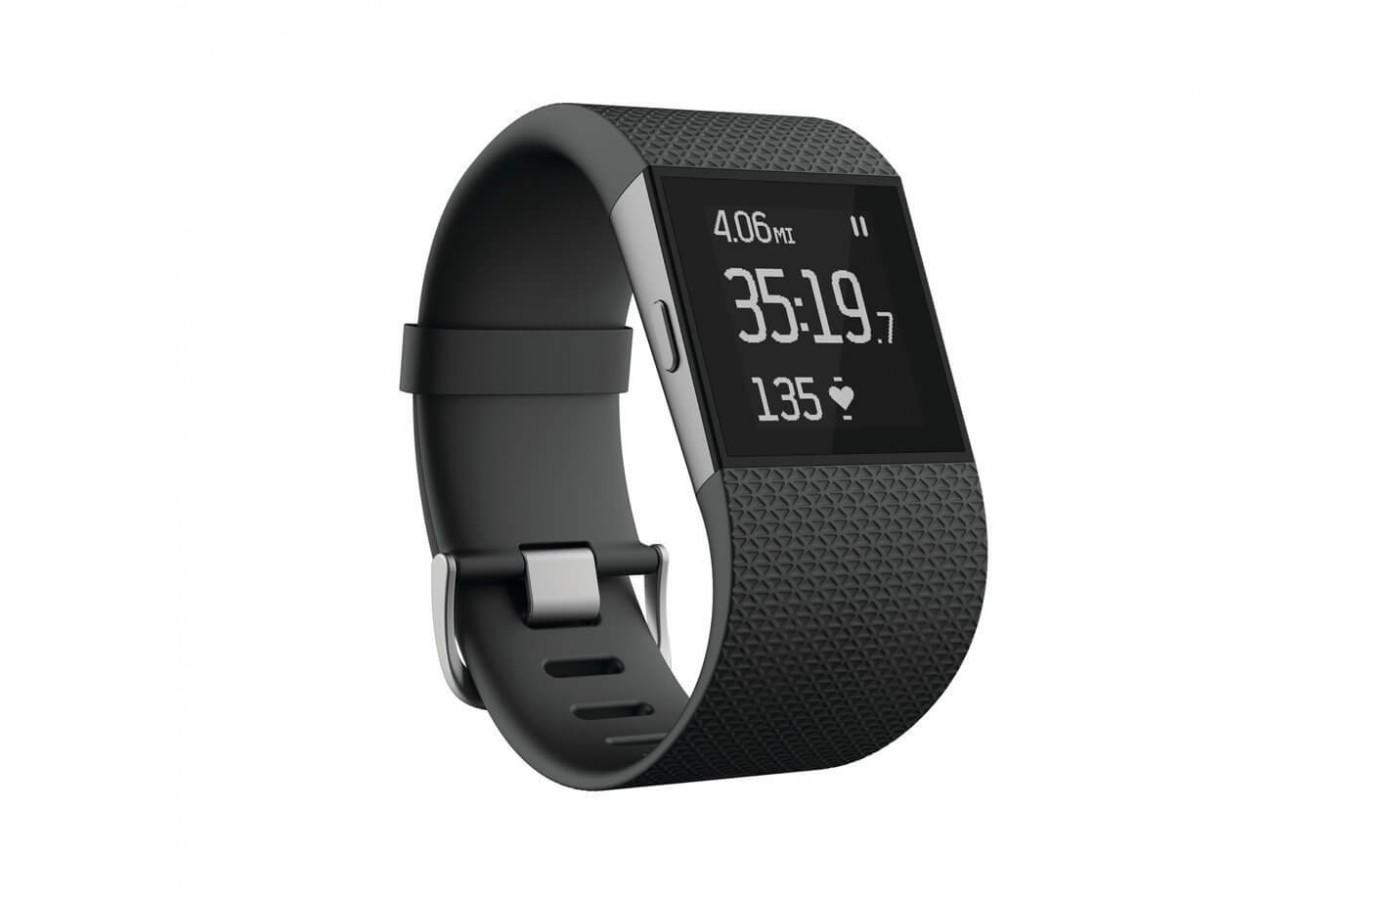 the Fitbit Surge is a reliable fitness tracker